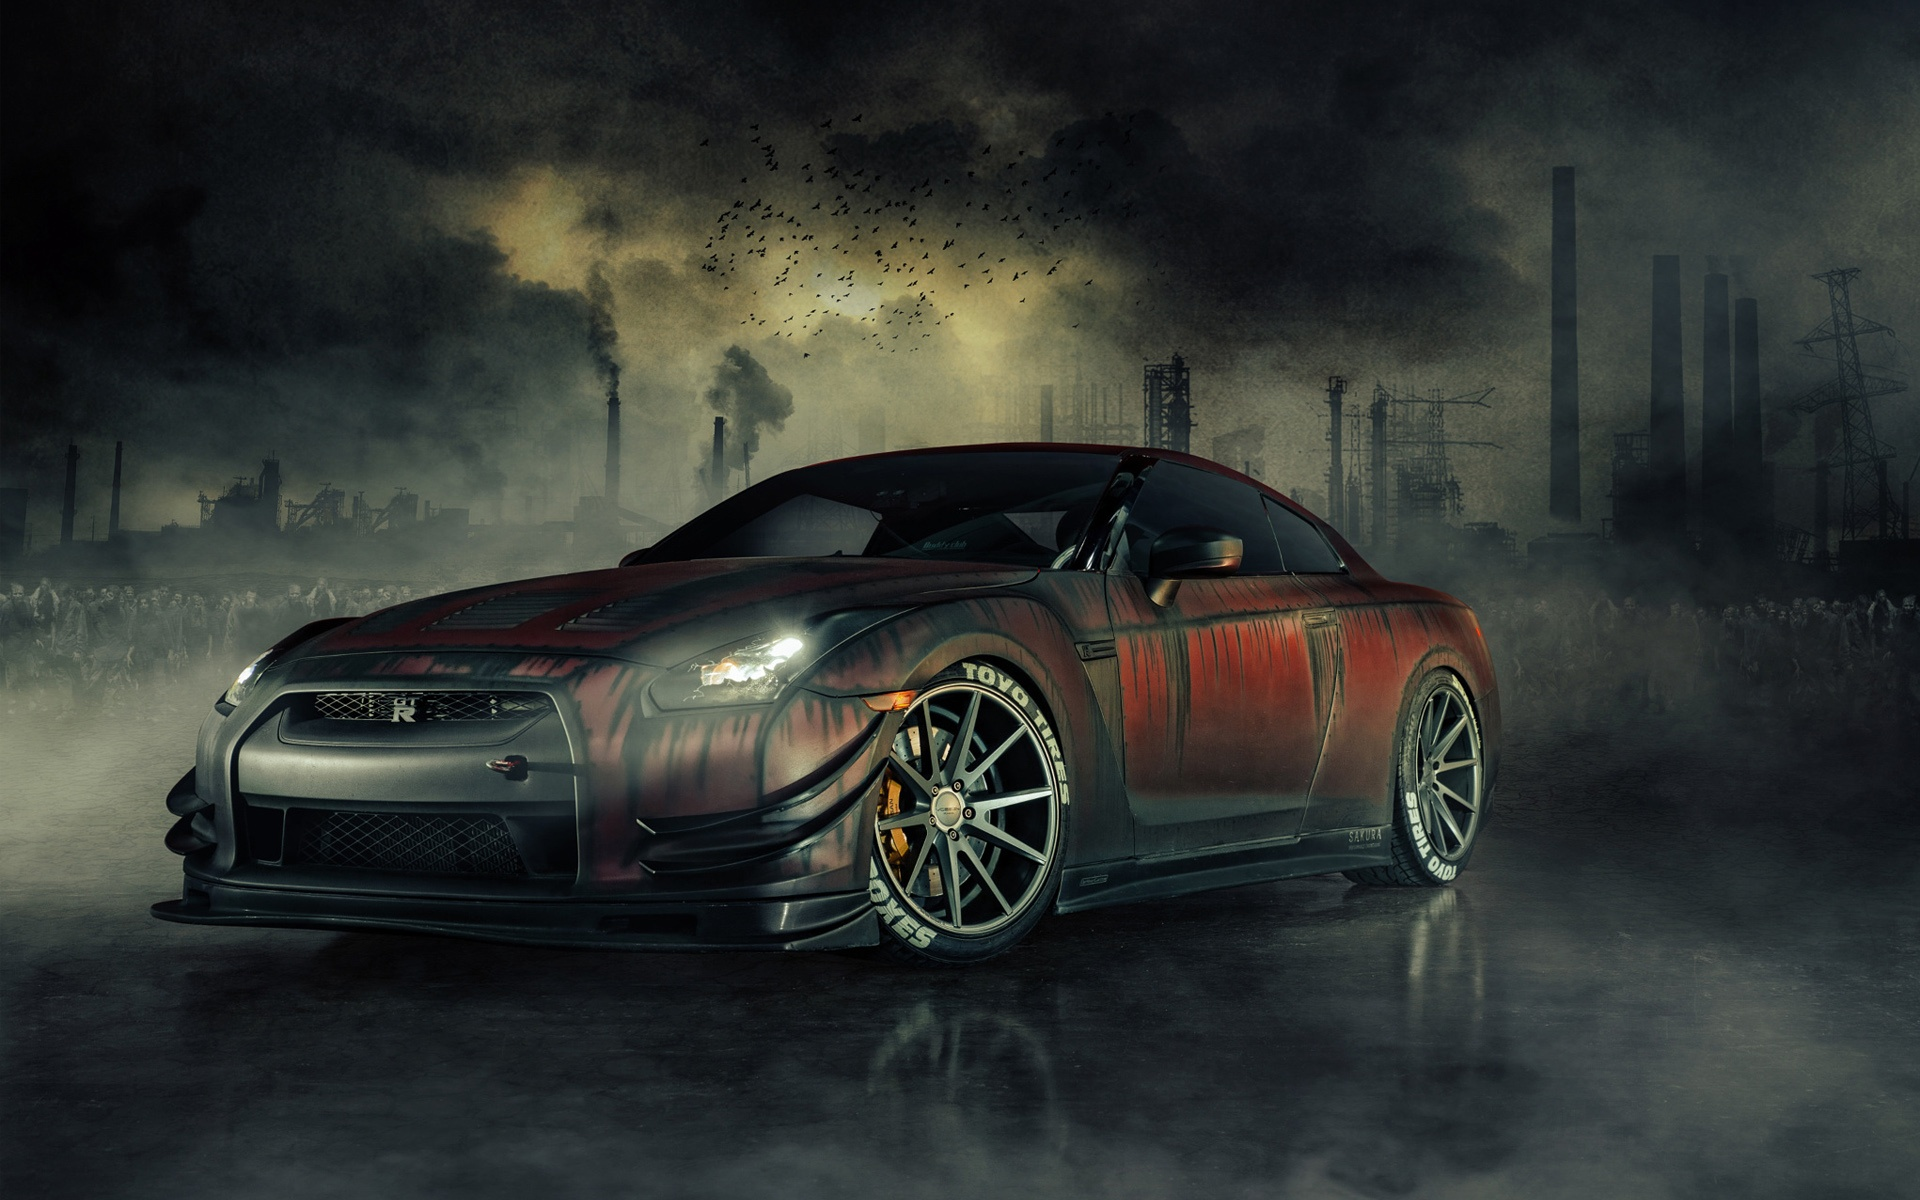 Nissan Gtr R35 Zombie Killer Wallpapers In Jpg Format For Free Download